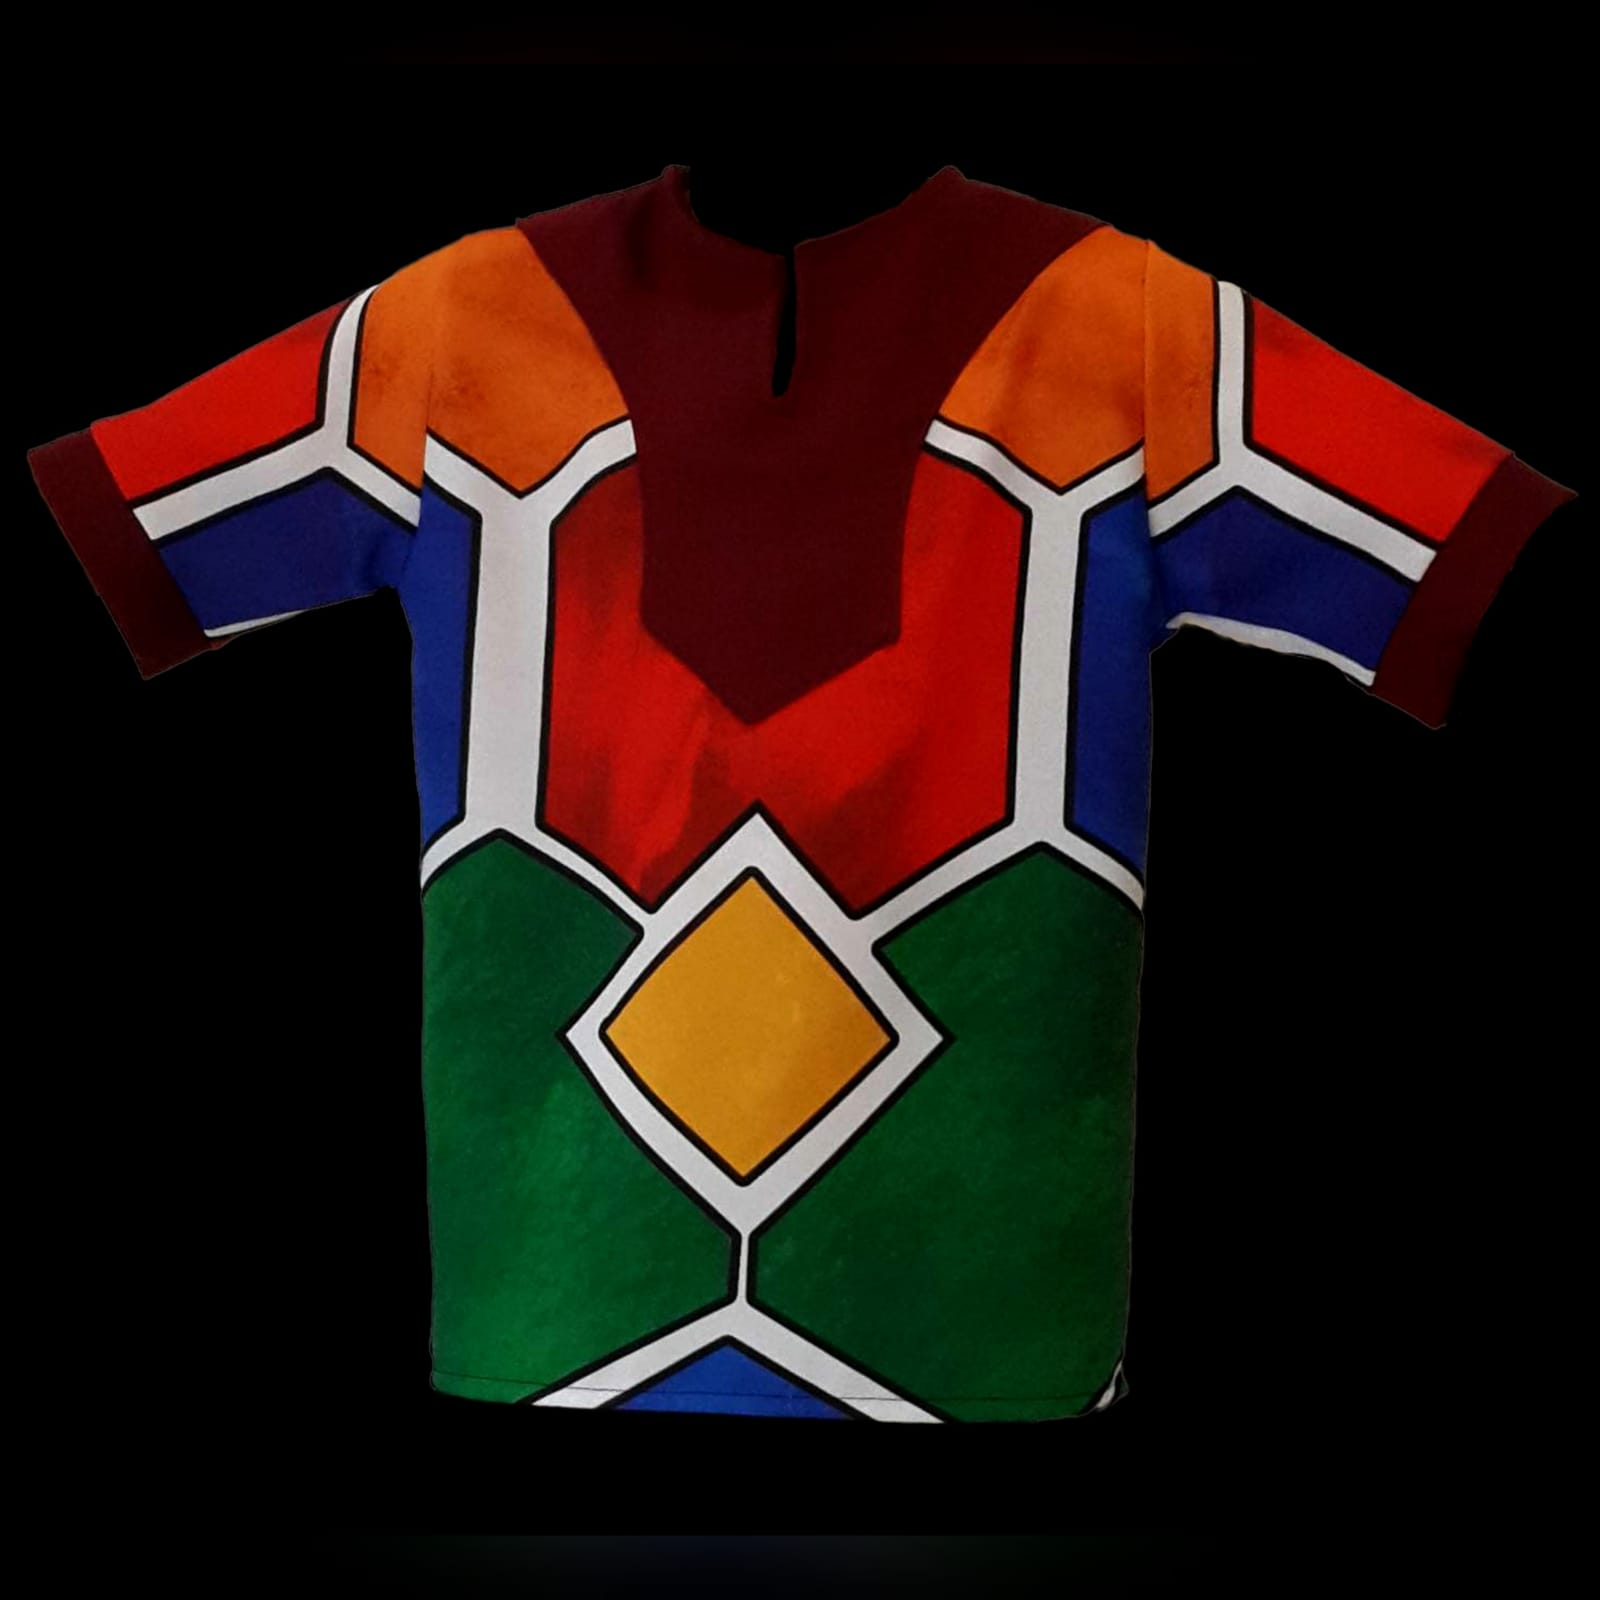 Matching father and son ndebele shirts 1 matching father & son ndebele shirts. Kids shirt sold separately. Please contact us to place an order.